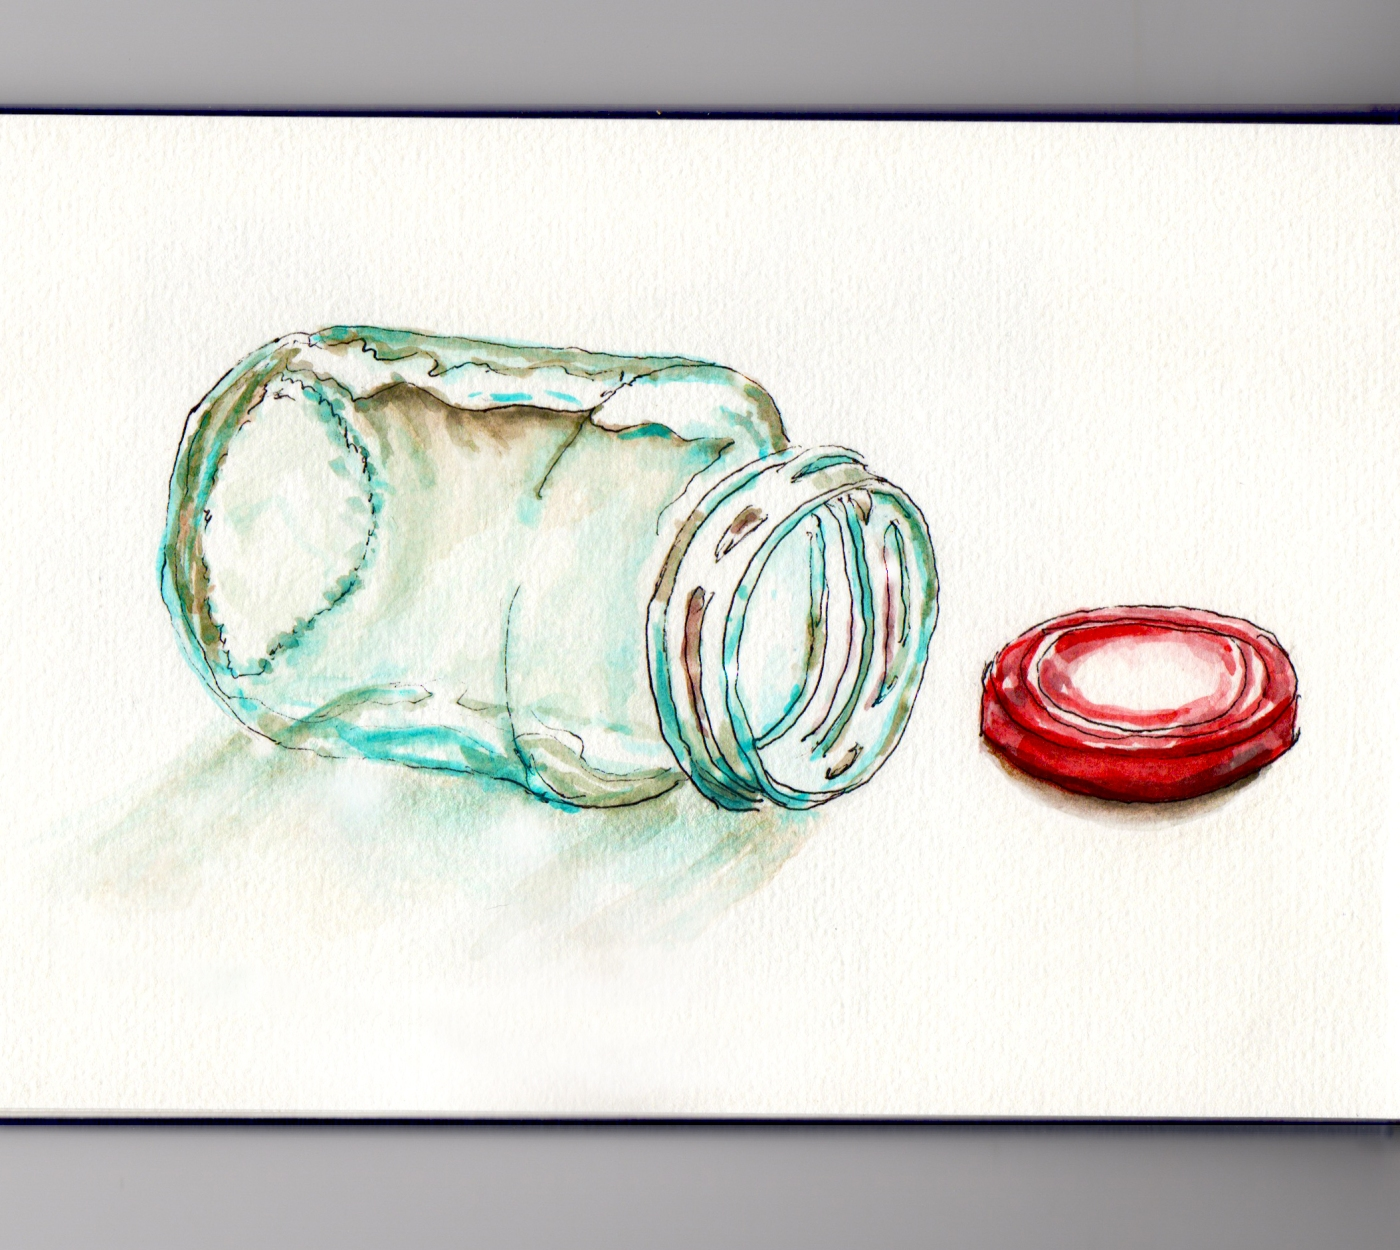 Day 15 #WorldWatercolorMonth Empty Glass container jar with red lid